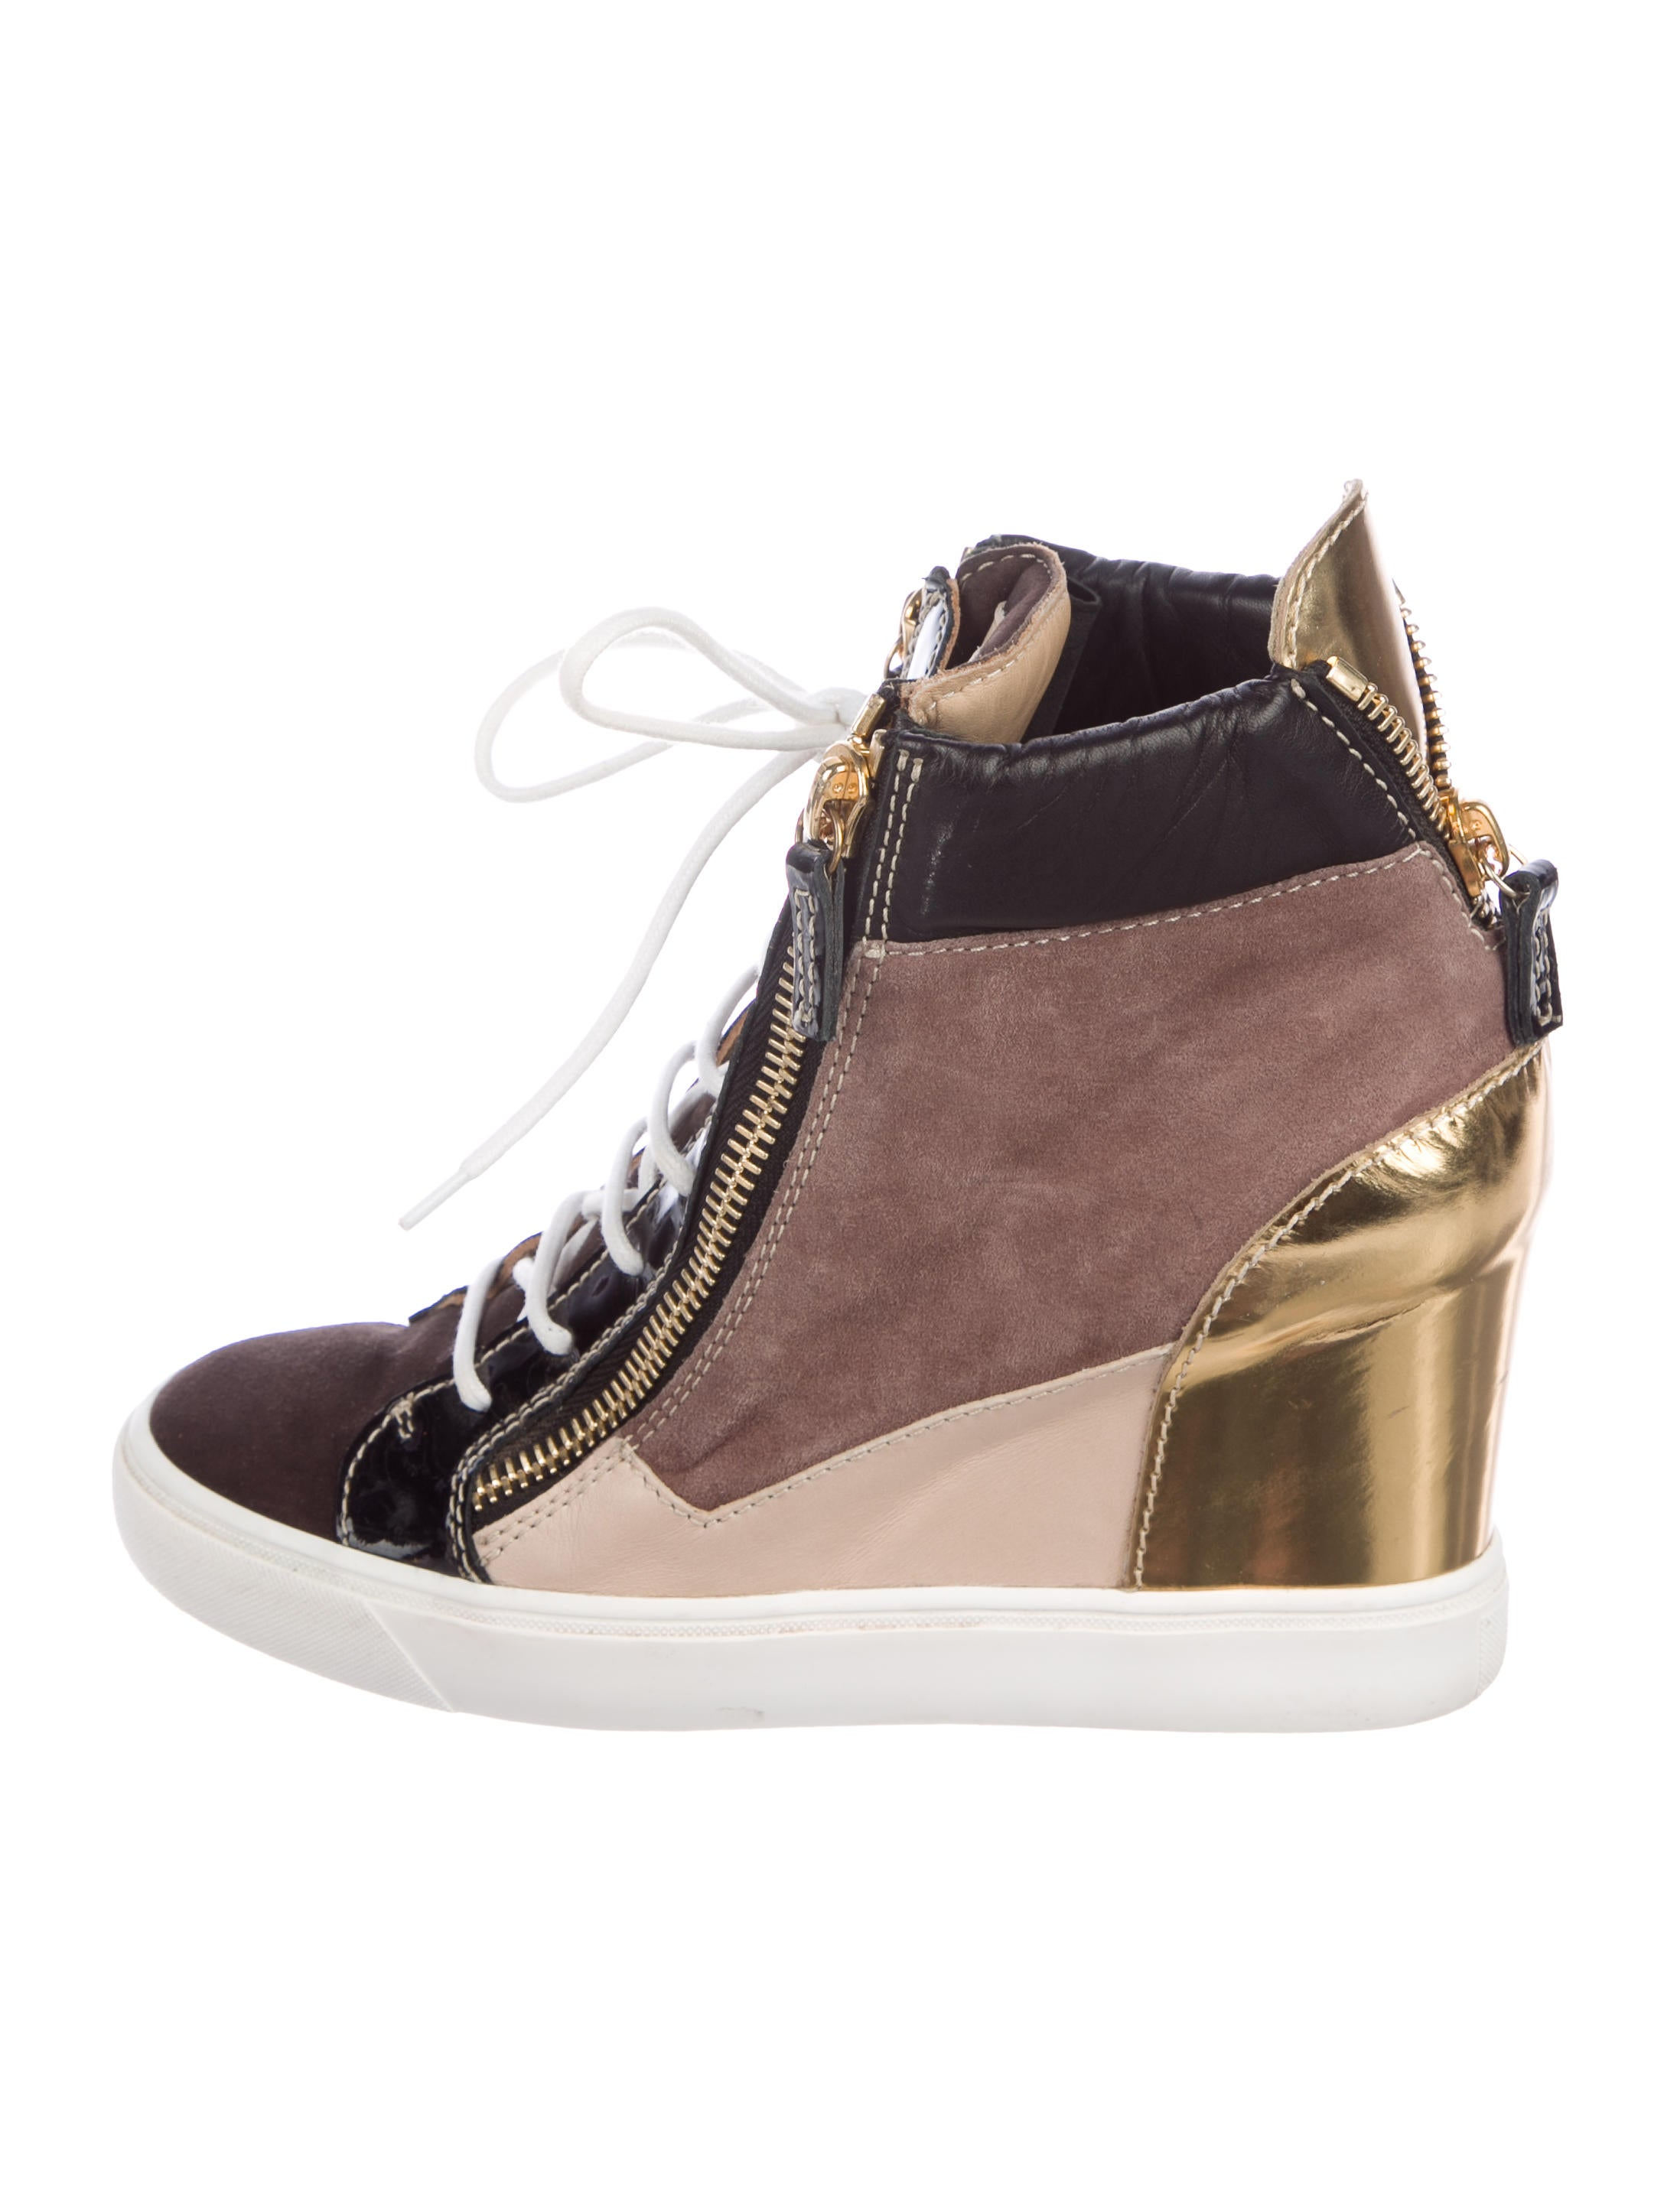 Giuseppe Zanotti Lorenz 75 Patchwork Sneakers perfect outlet big sale gHS8Q7